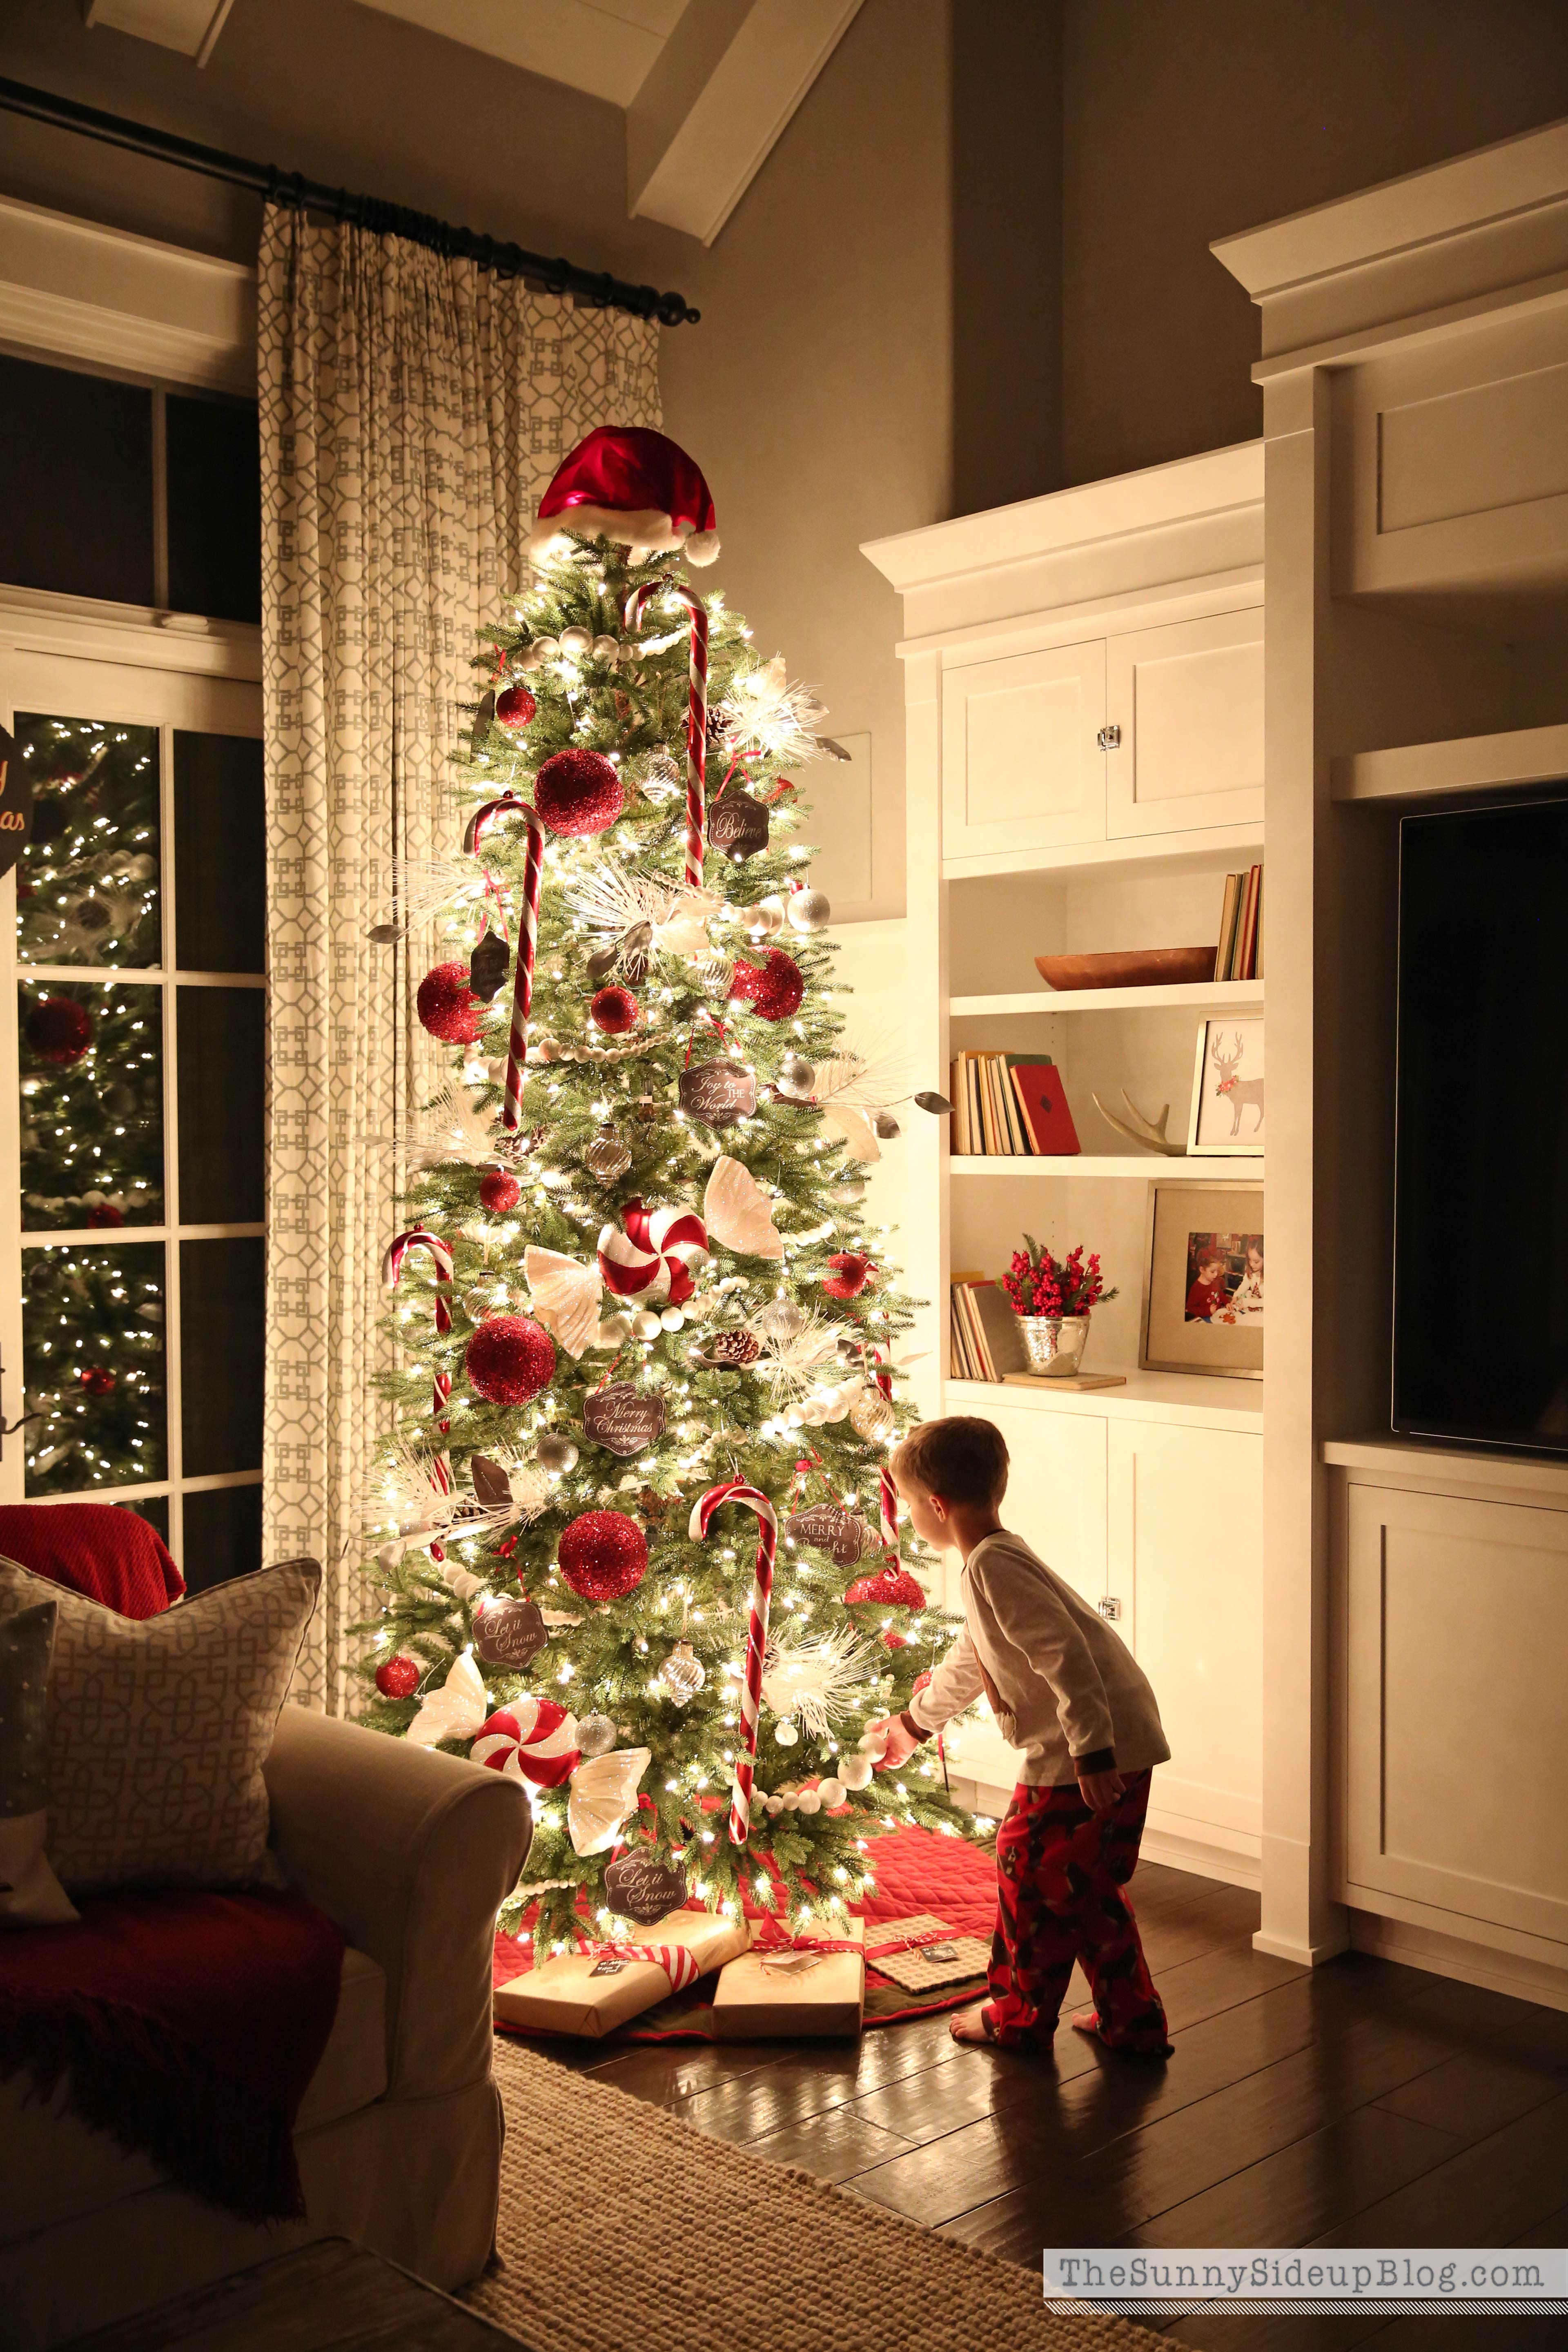 When Can I Put Up My Christmas Tree